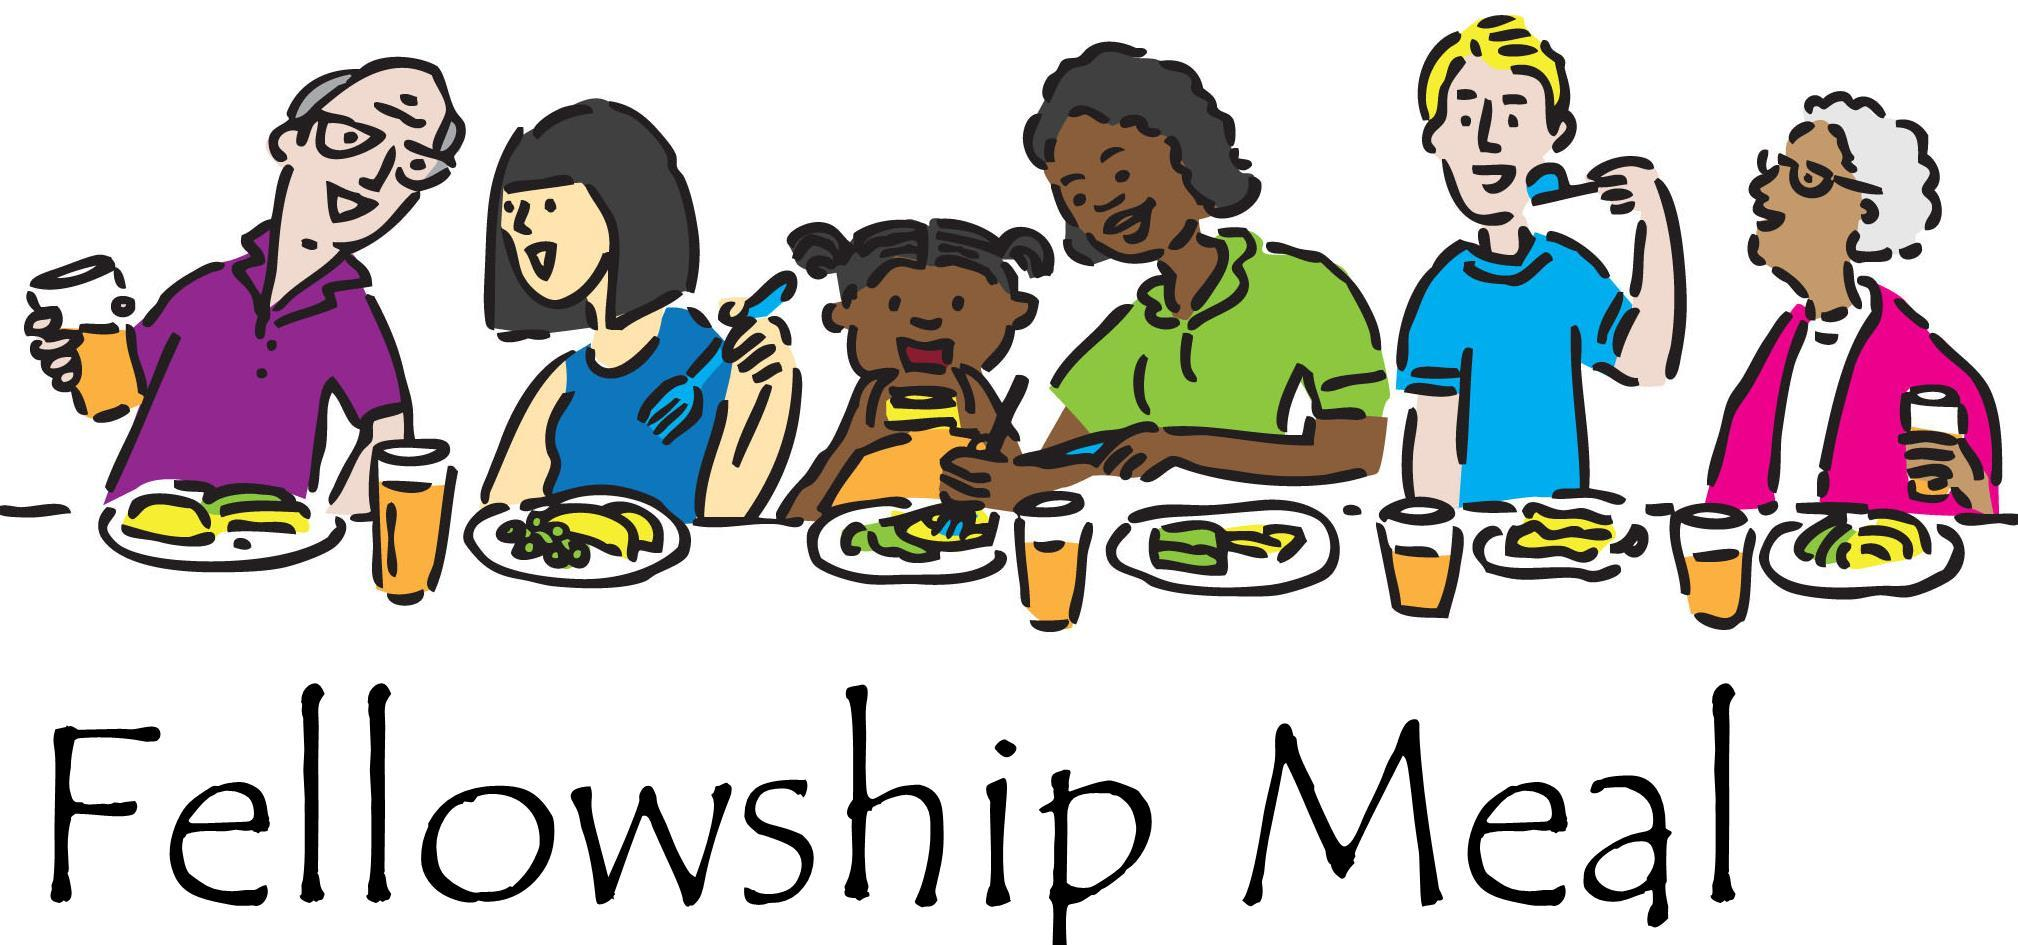 Church Fellowship Meal Clip Art N2 image in Vector cliparts category.